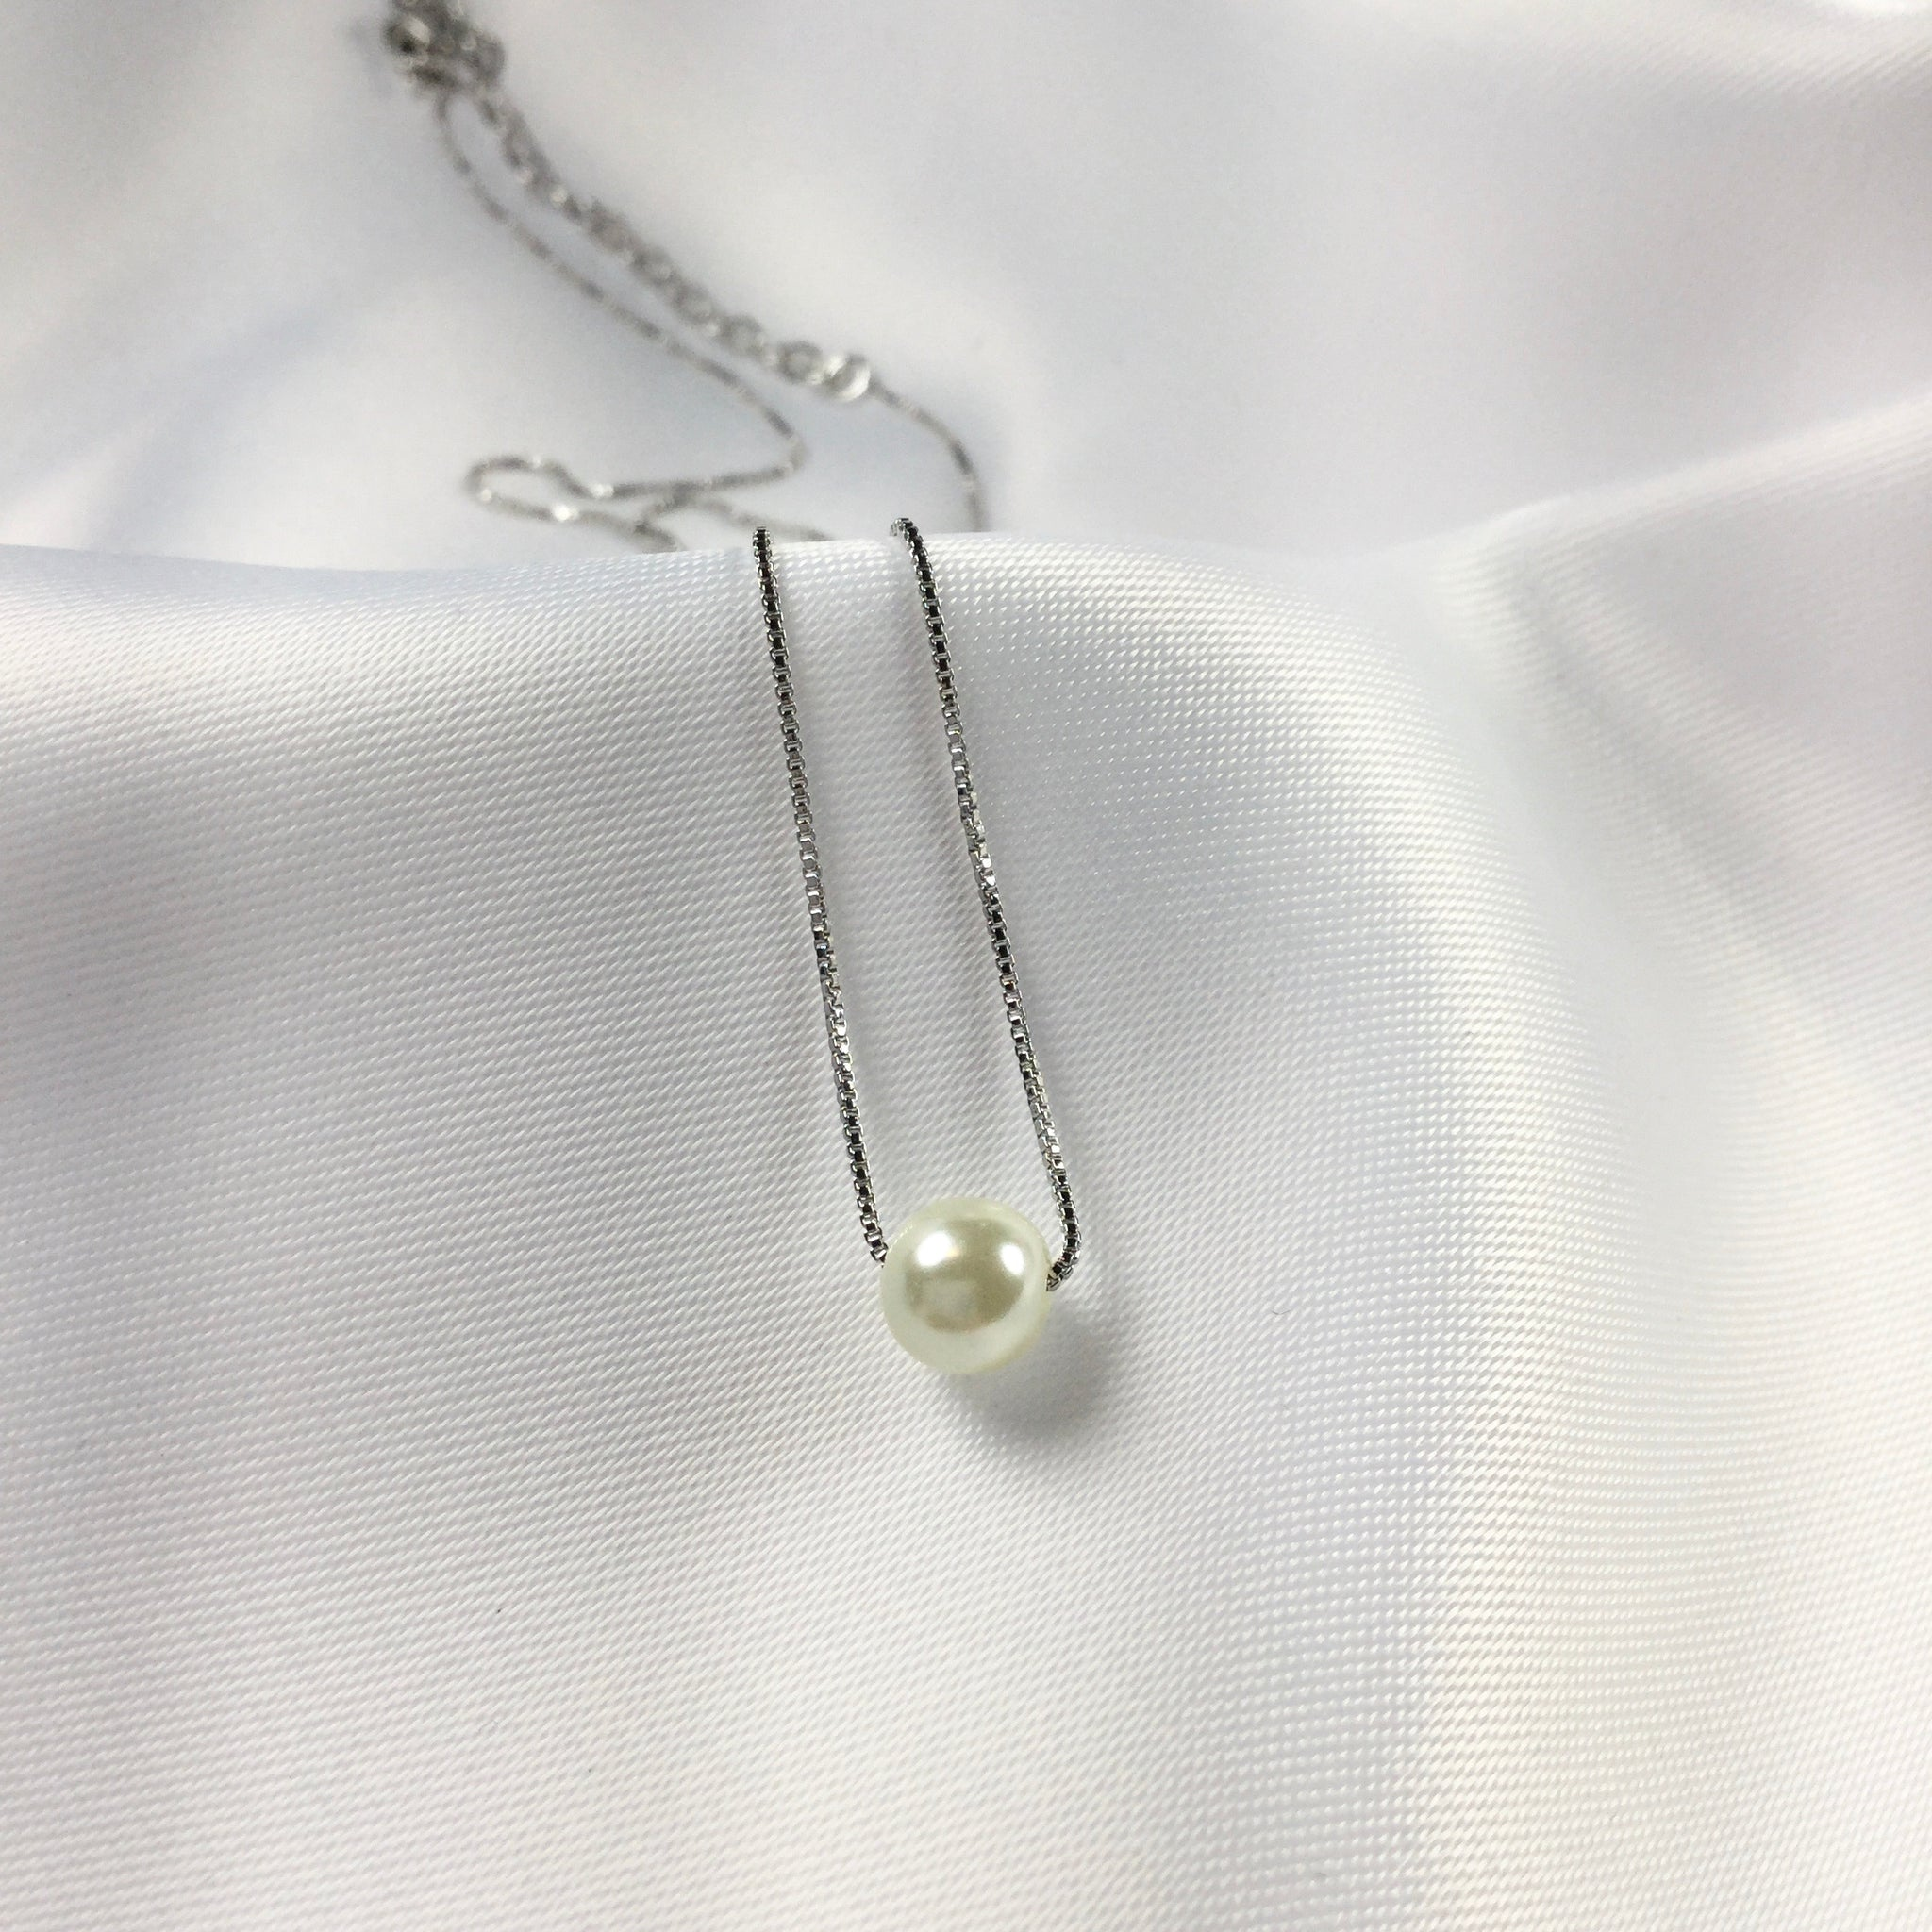 Delicate necklace mini pearl